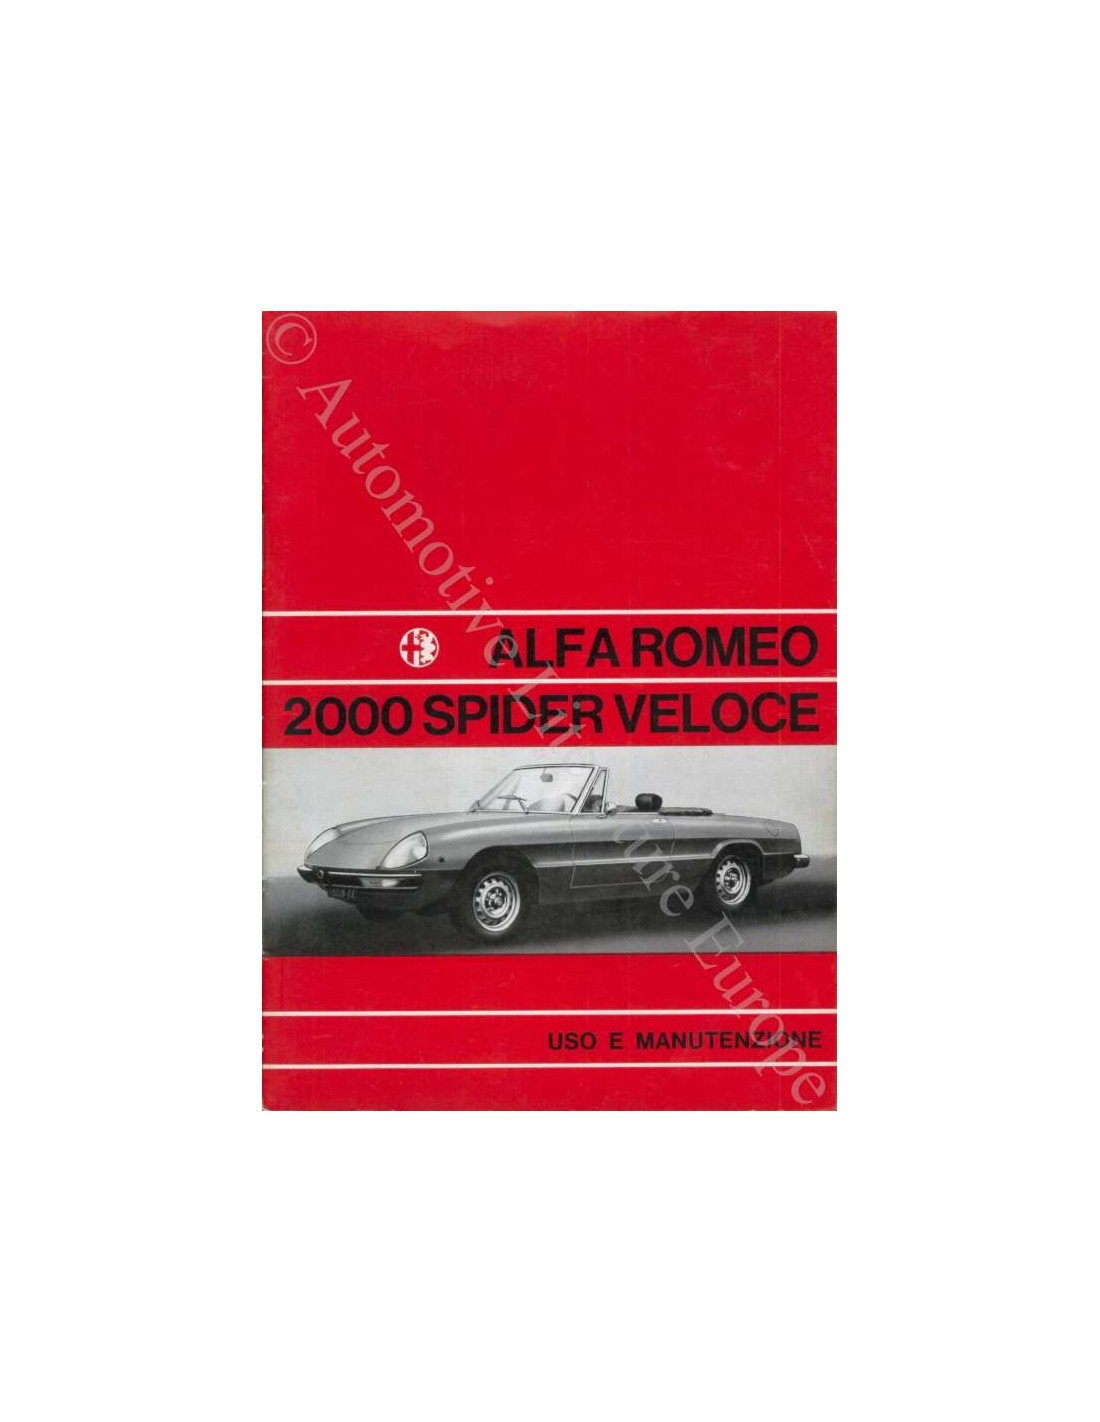 1971 ALFA ROMEO SPIDER 2000 VELOCE OWNERS MANUAL ITALIAN